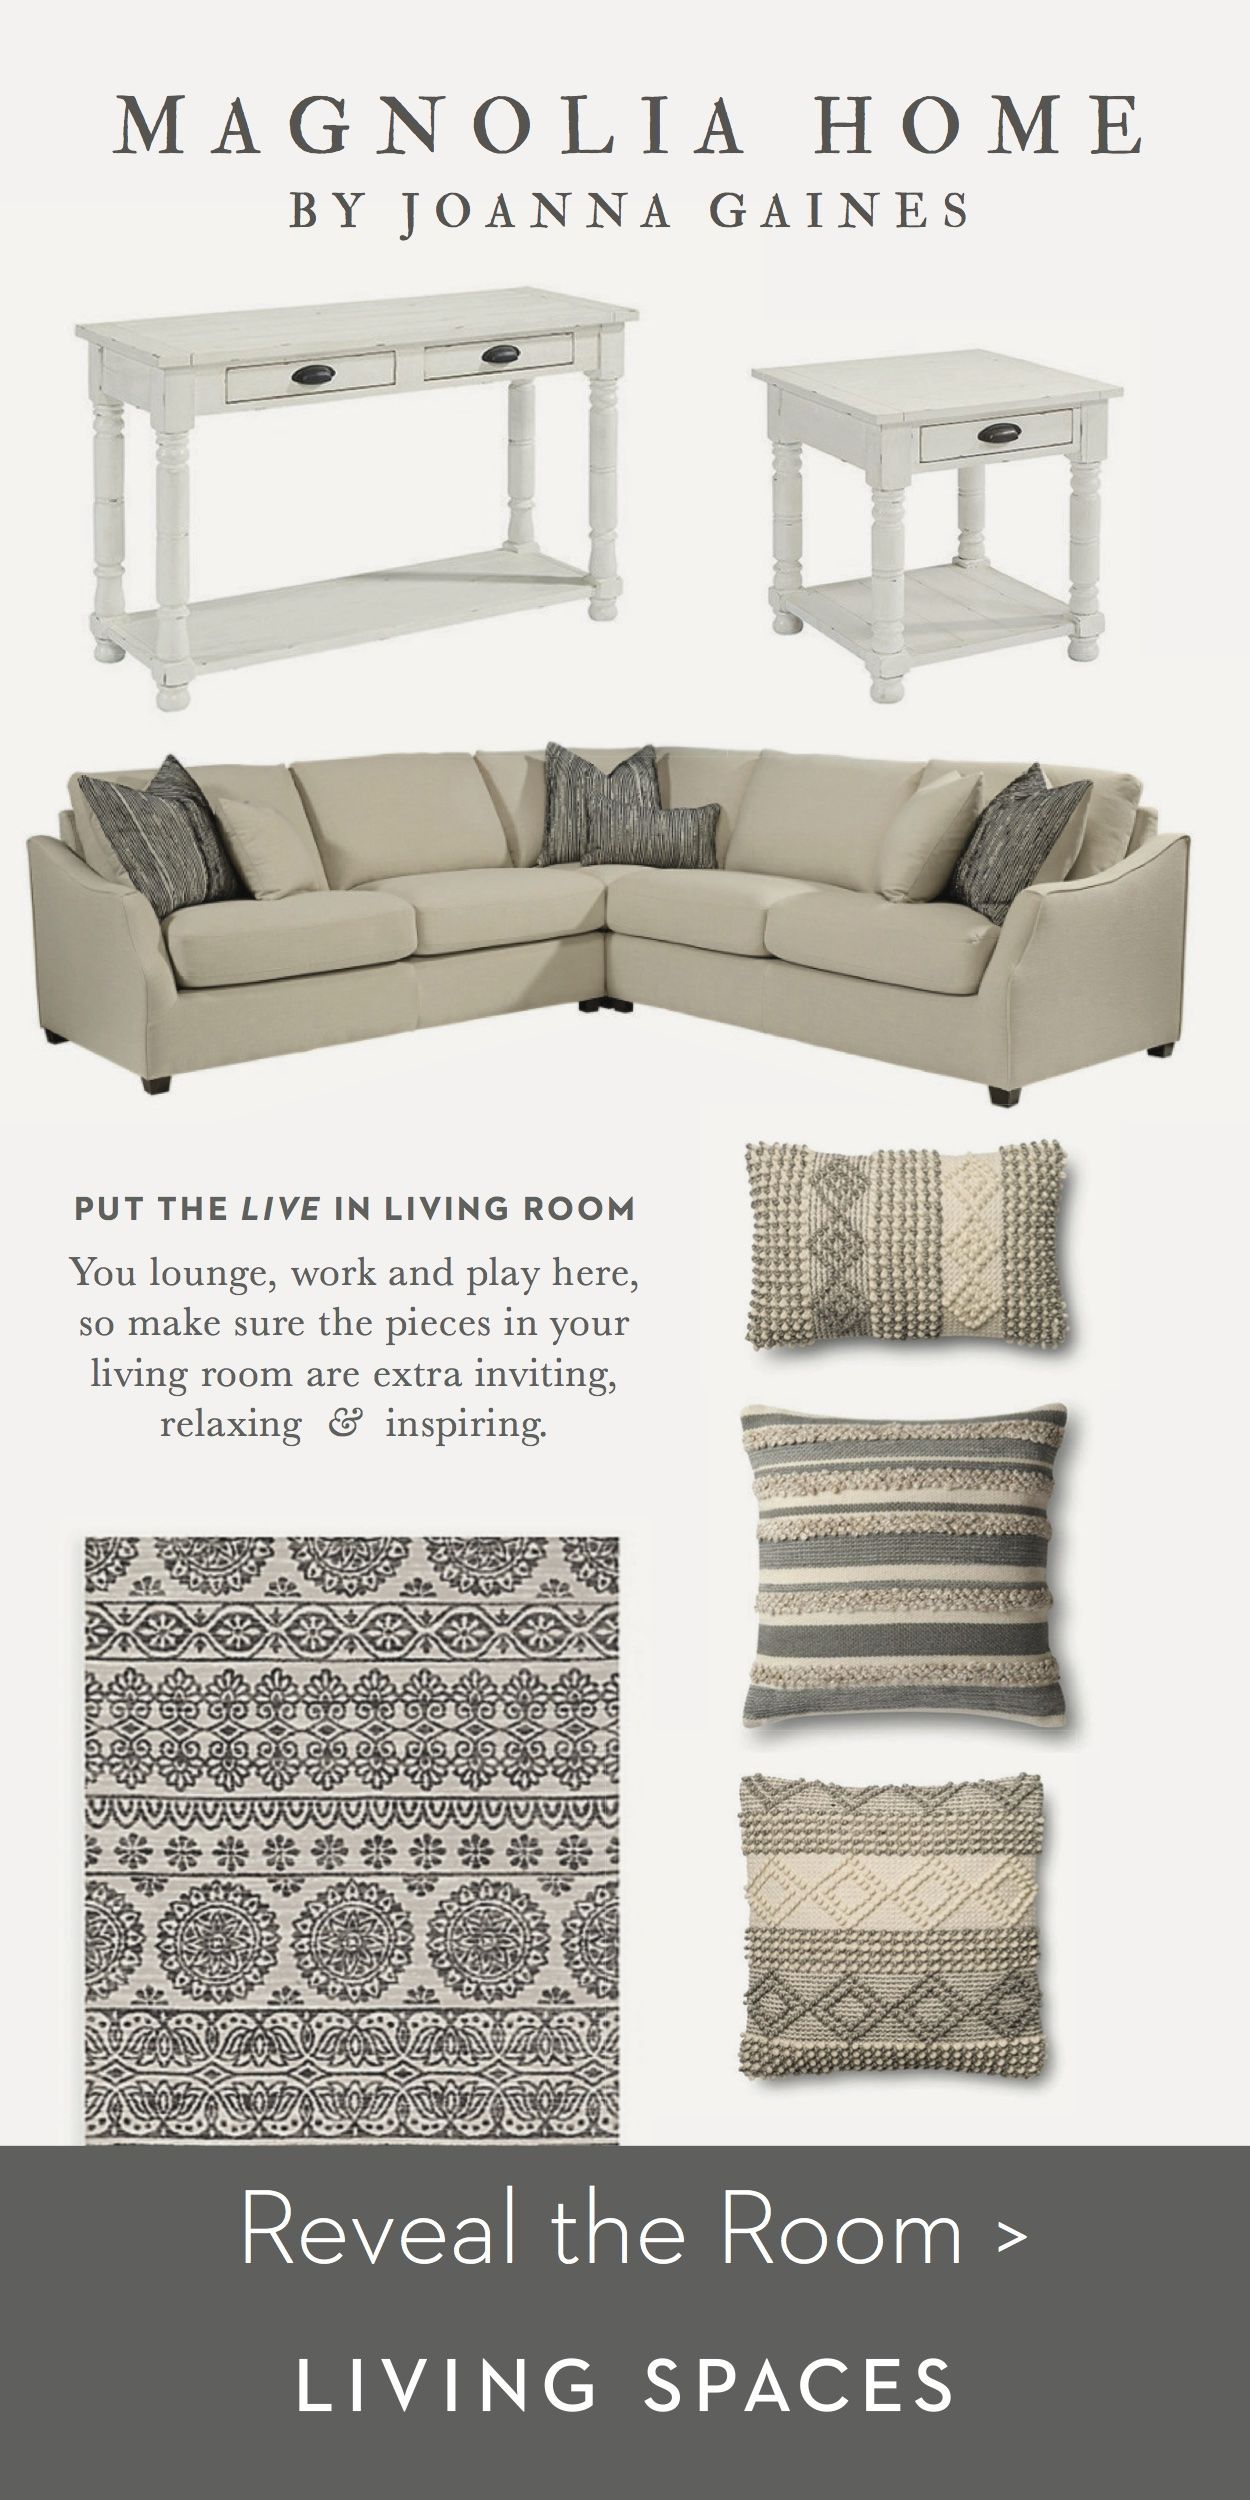 The neutral homestead sectional sofa bobbin cocktail table lotus fog beige rug come together to create a cozy relaxed living space